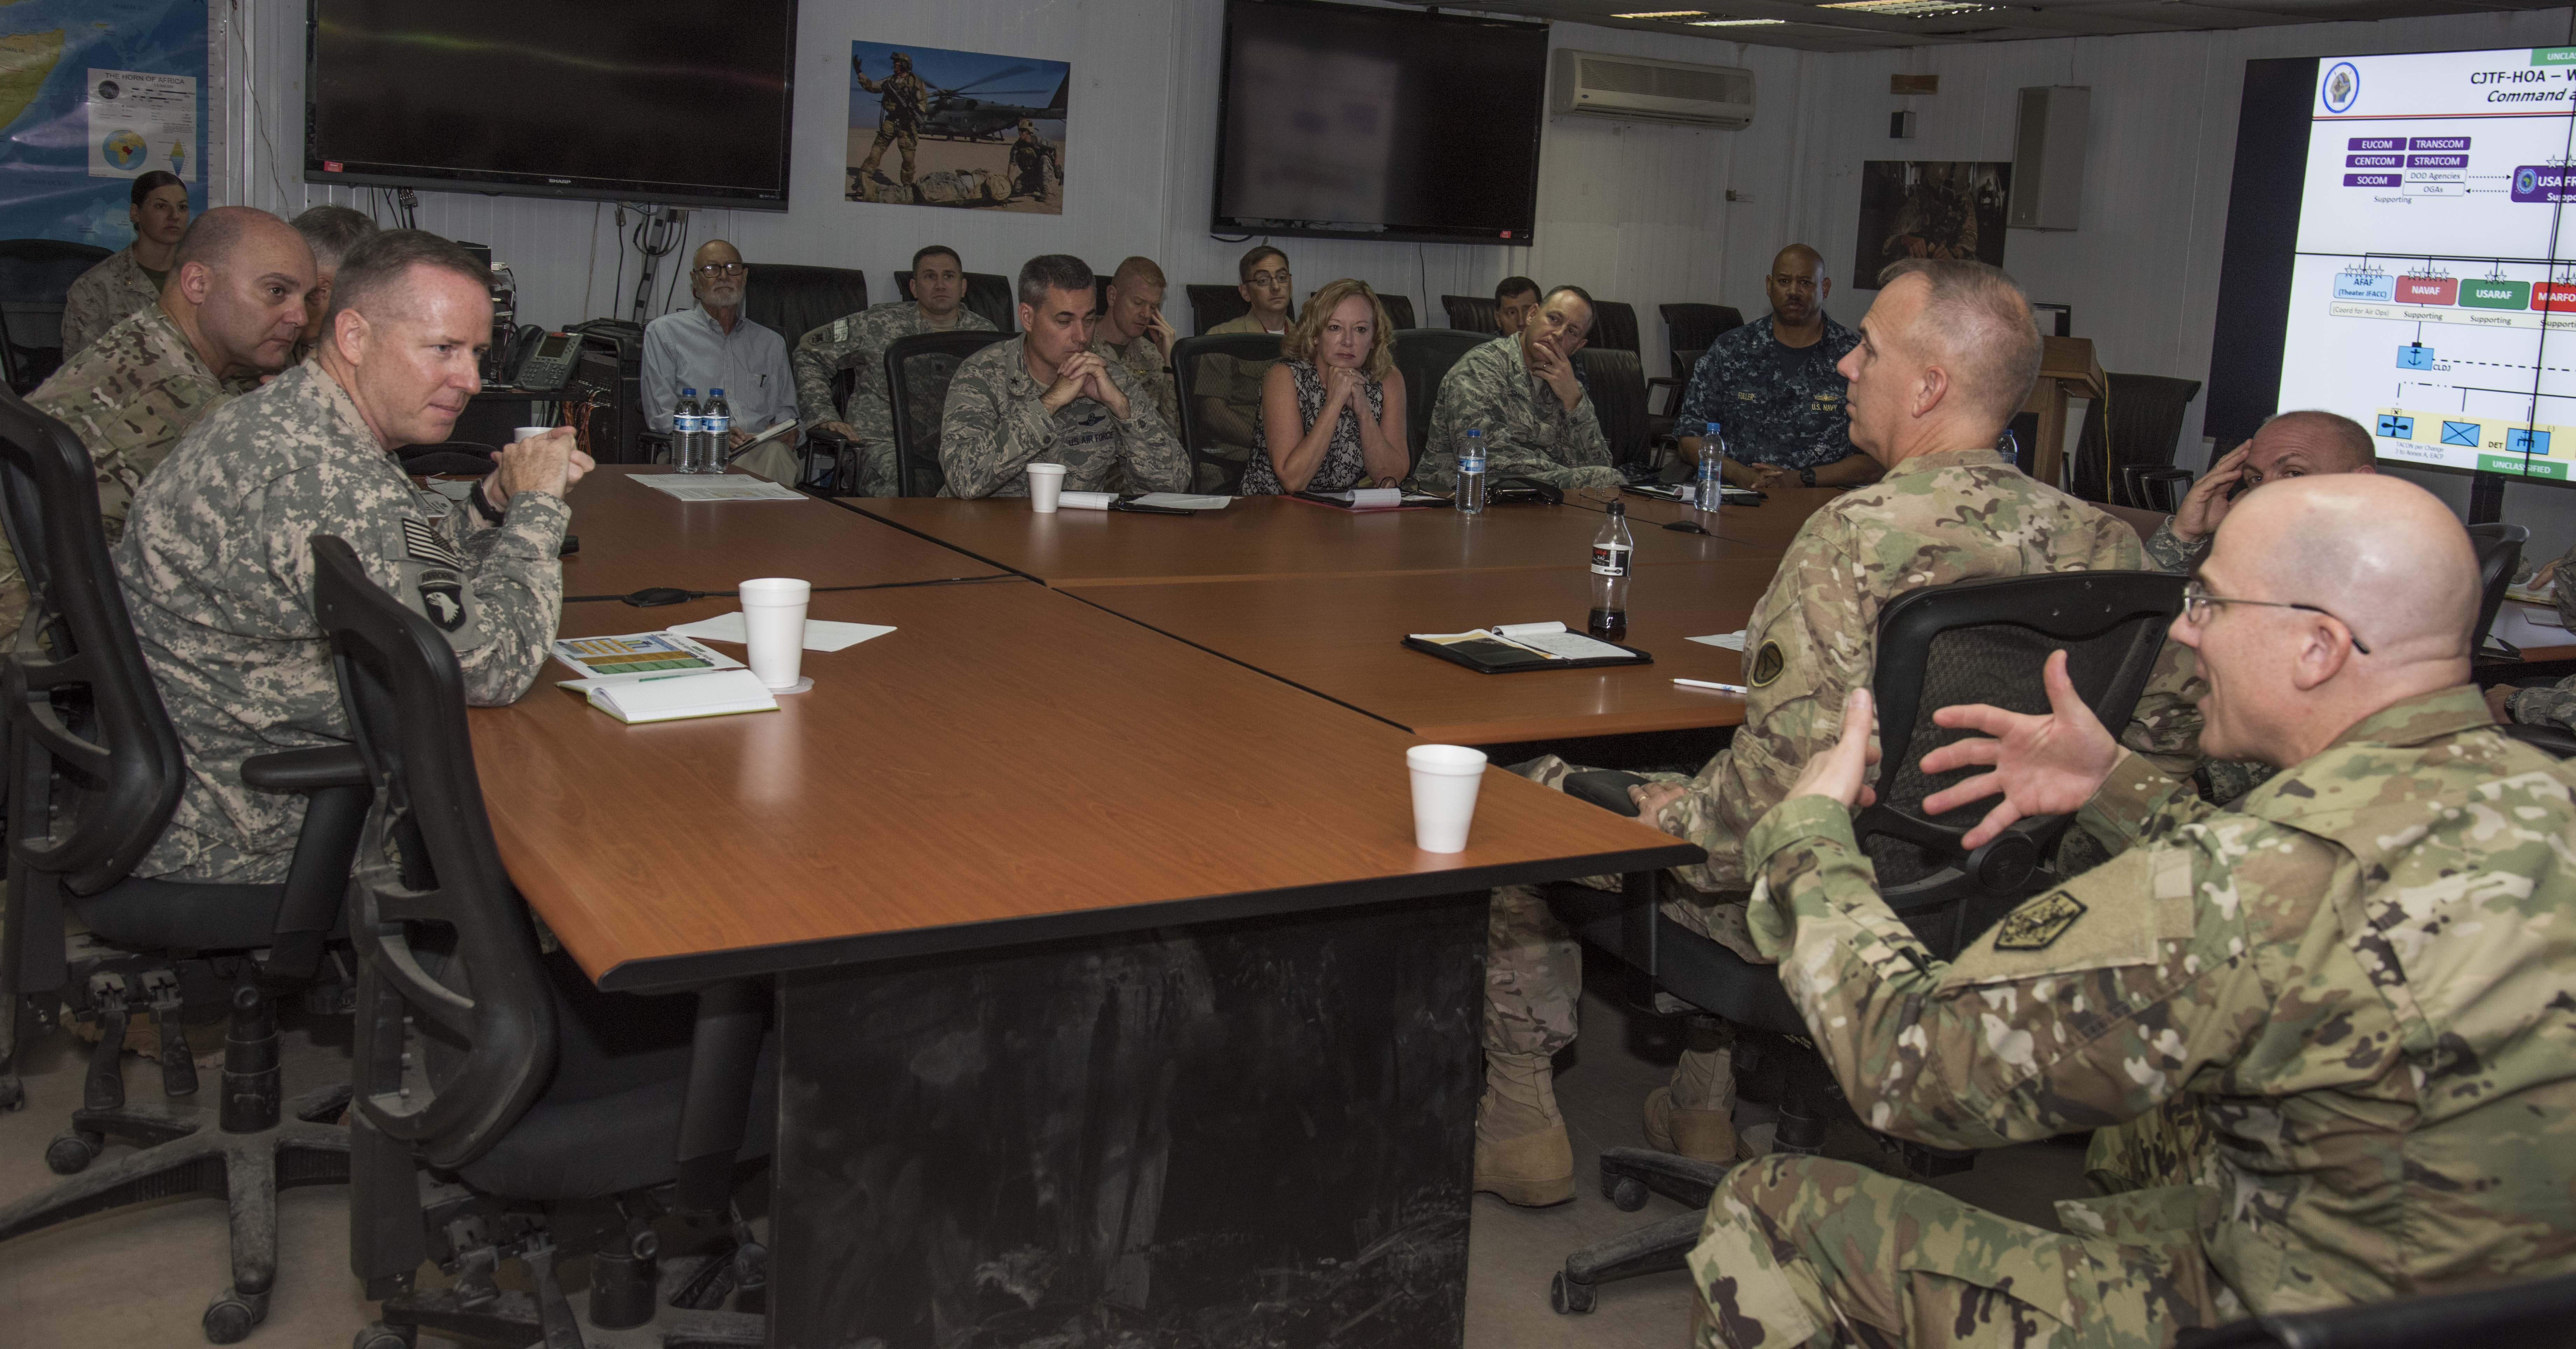 Fellows from the 2016-1 CAPSTONE course ask questions of Combined Joint Task Force-Horn of Africa senior staff during their mission brief at Camp Lemonnier, Djibouti, Oct. 14, 2015. CAPSTONE is a five-week course for newly selected general and flag officers, and is designed to make the senior officers more effective in planning and employing forces in joint and combined operations.  (U.S. Air Force photo by Staff Sgt. Victoria Sneed)